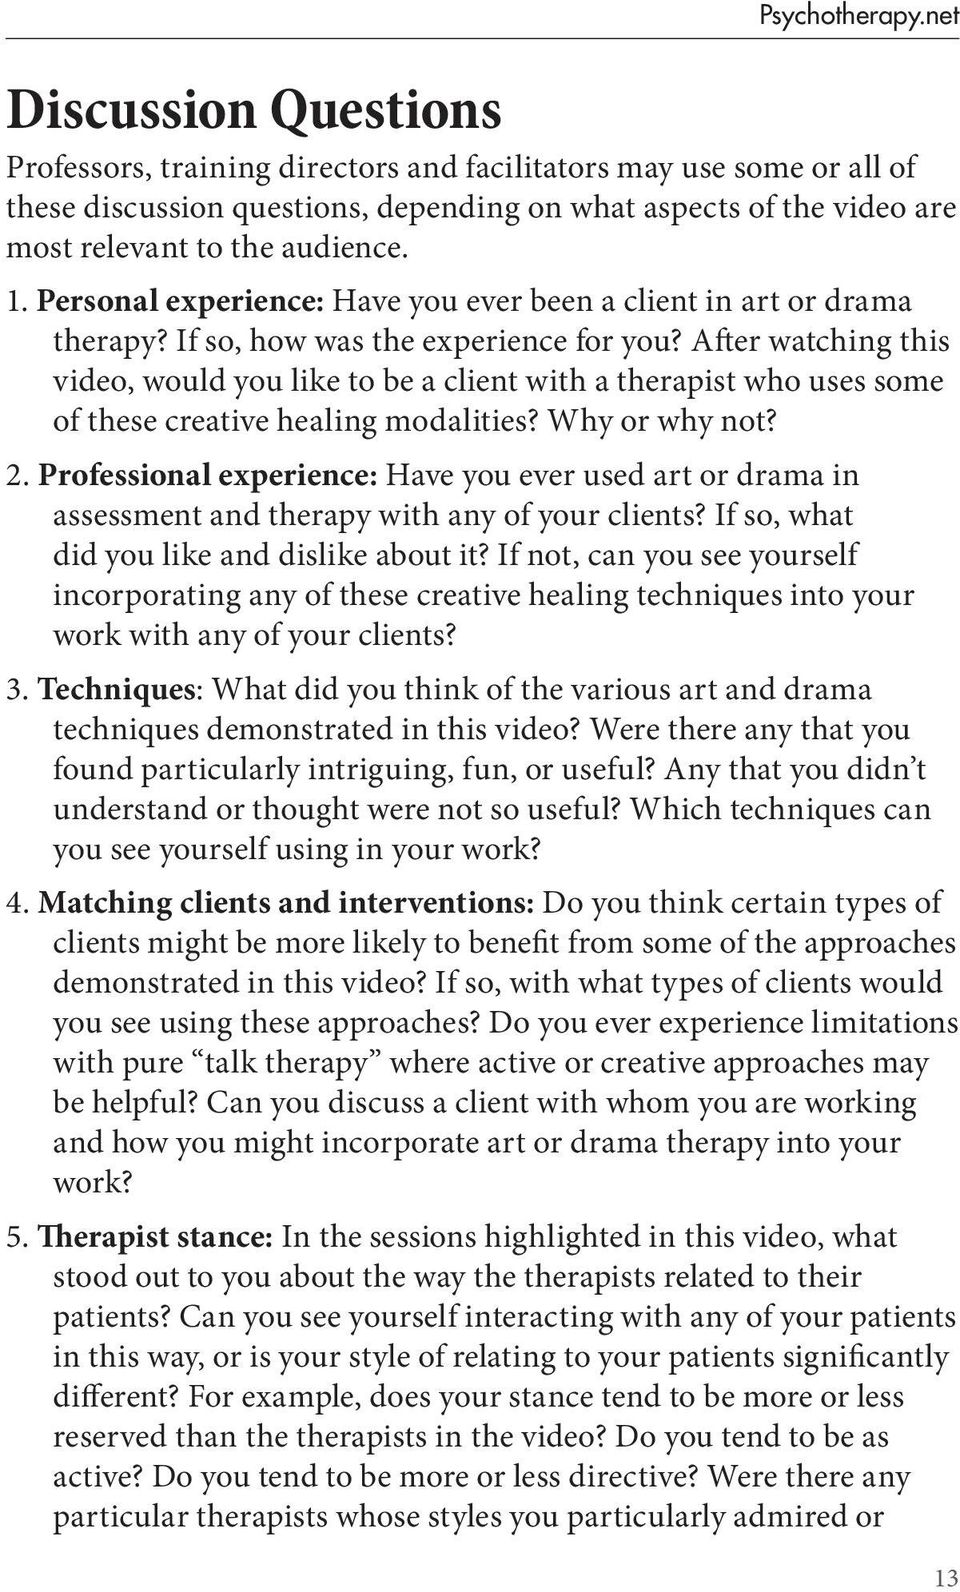 Personal experience: Have you ever been a client in art or drama therapy? If so, how was the experience for you?